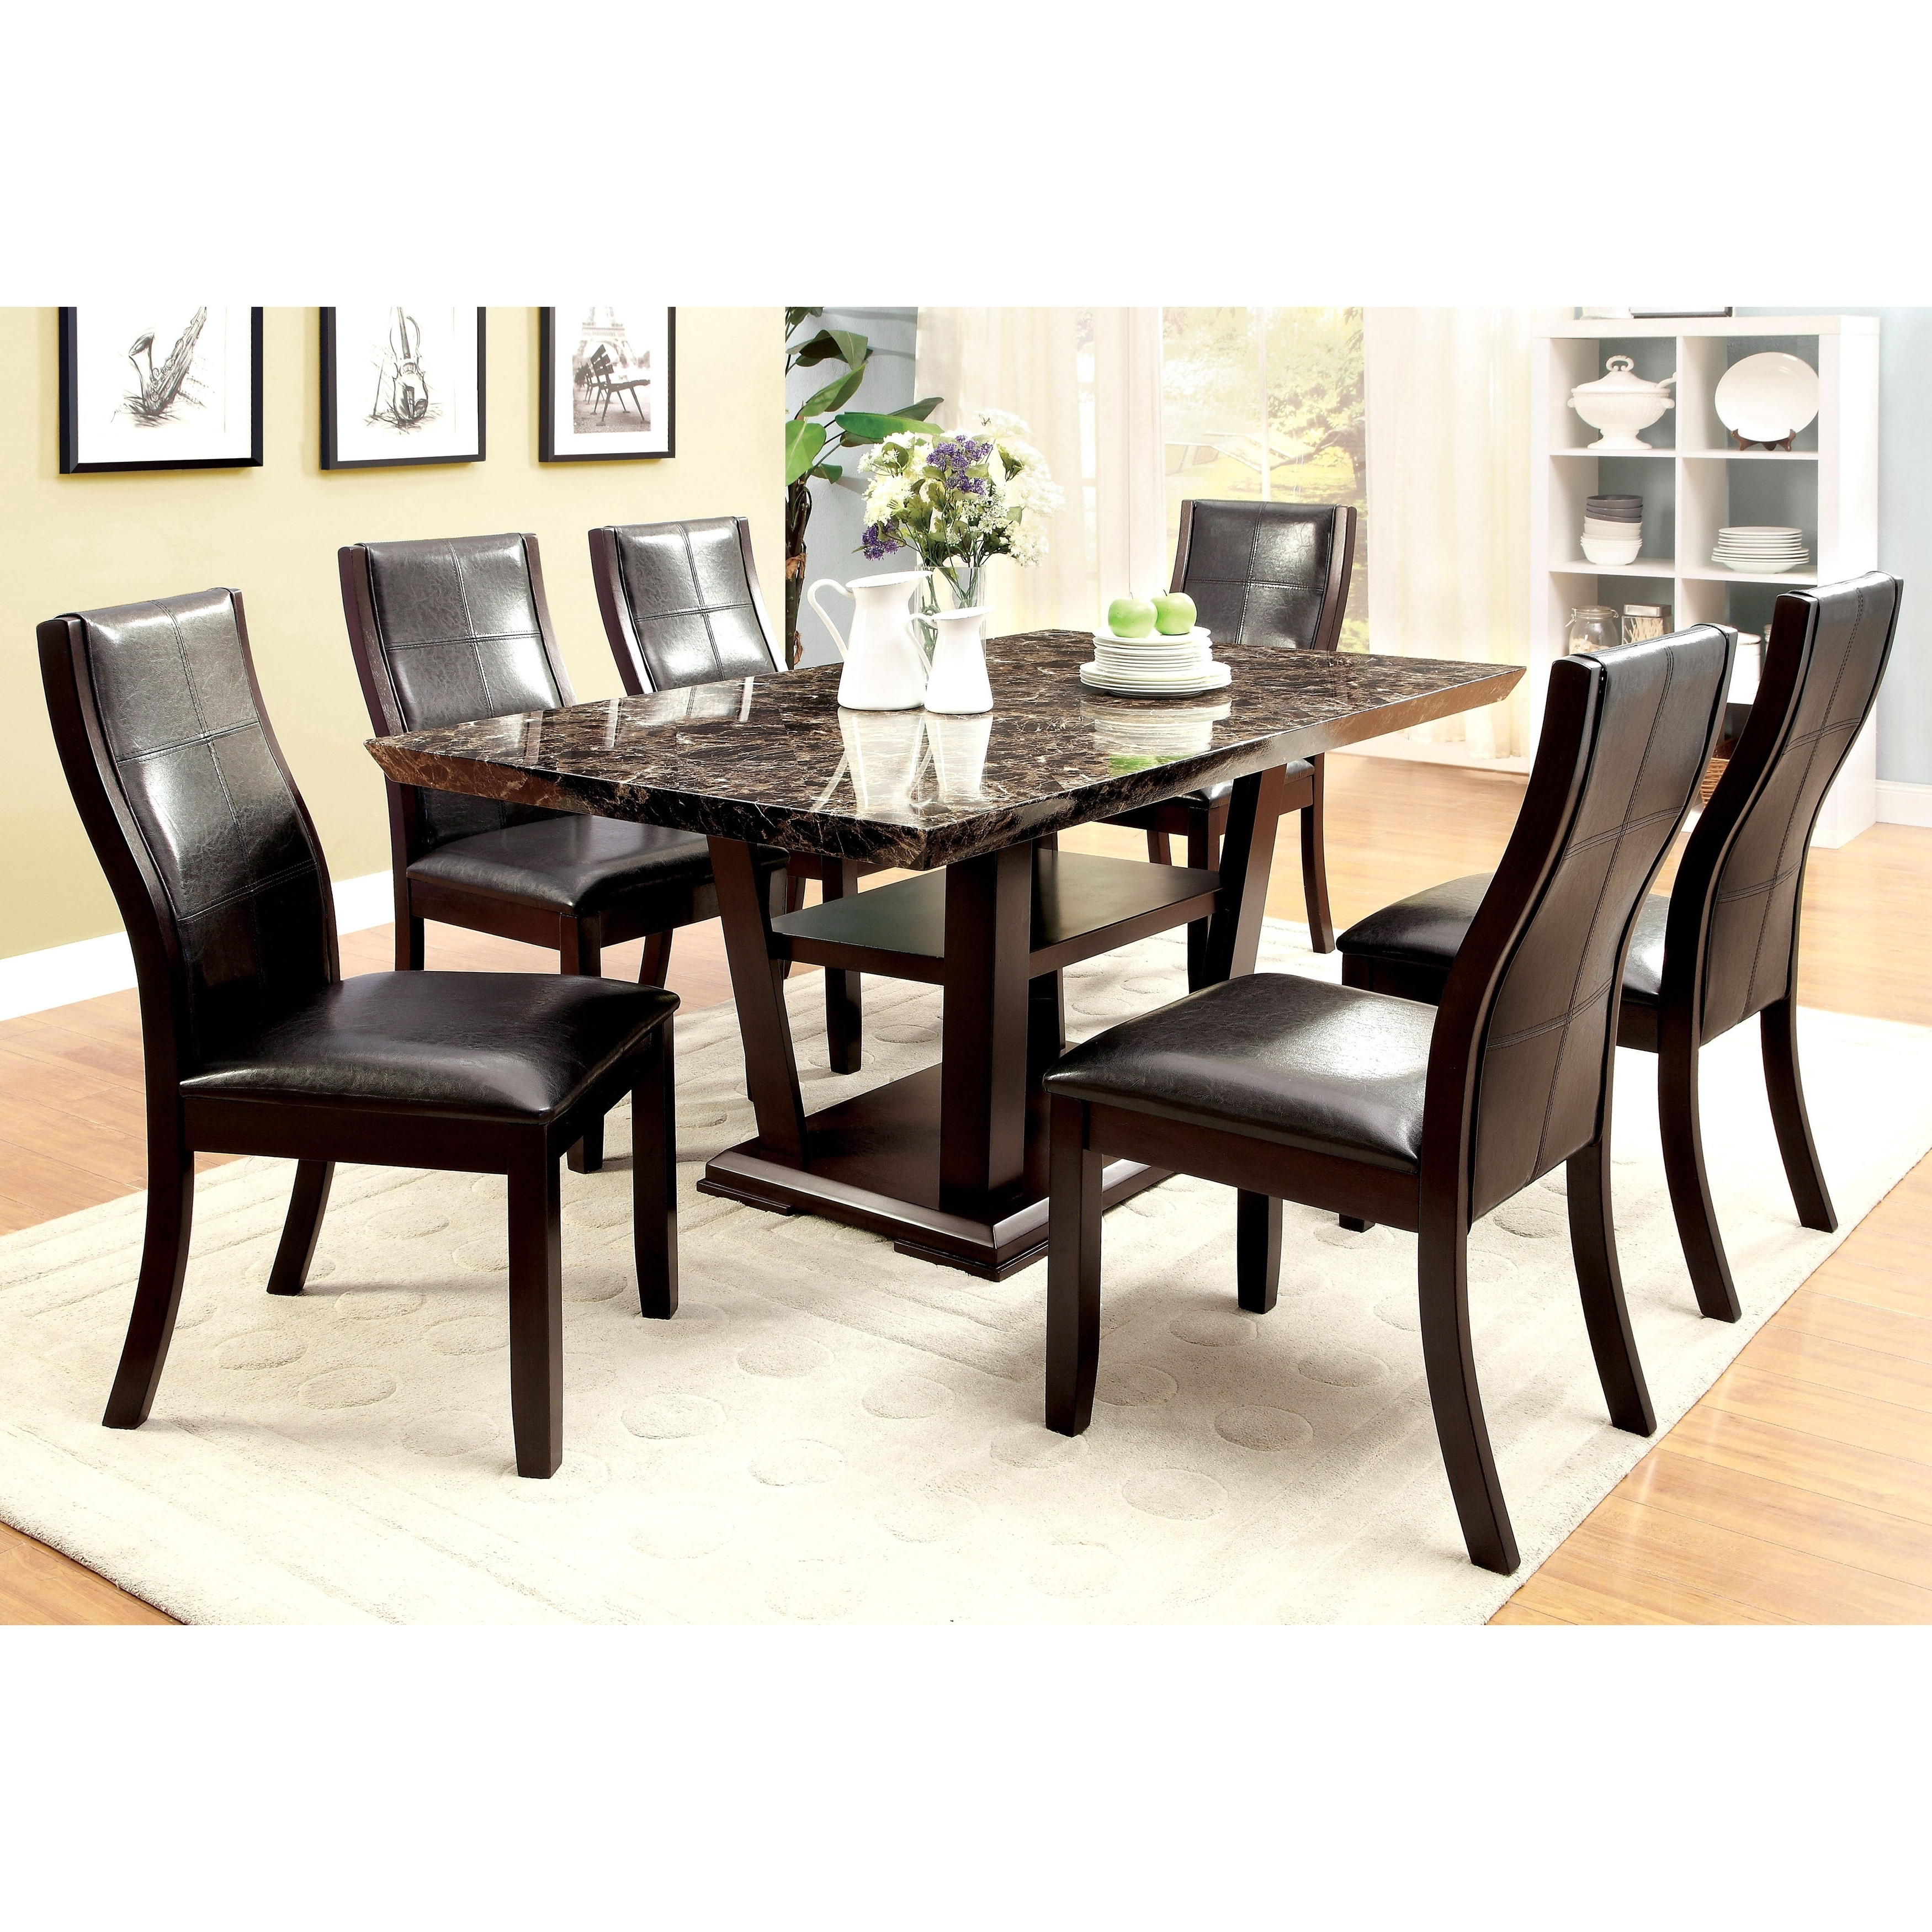 Marble Dining Chairs Intended For Most Recently Released Shop Furniture Of America Elivia Modern 7 Piece Faux Marble Dining (View 18 of 25)